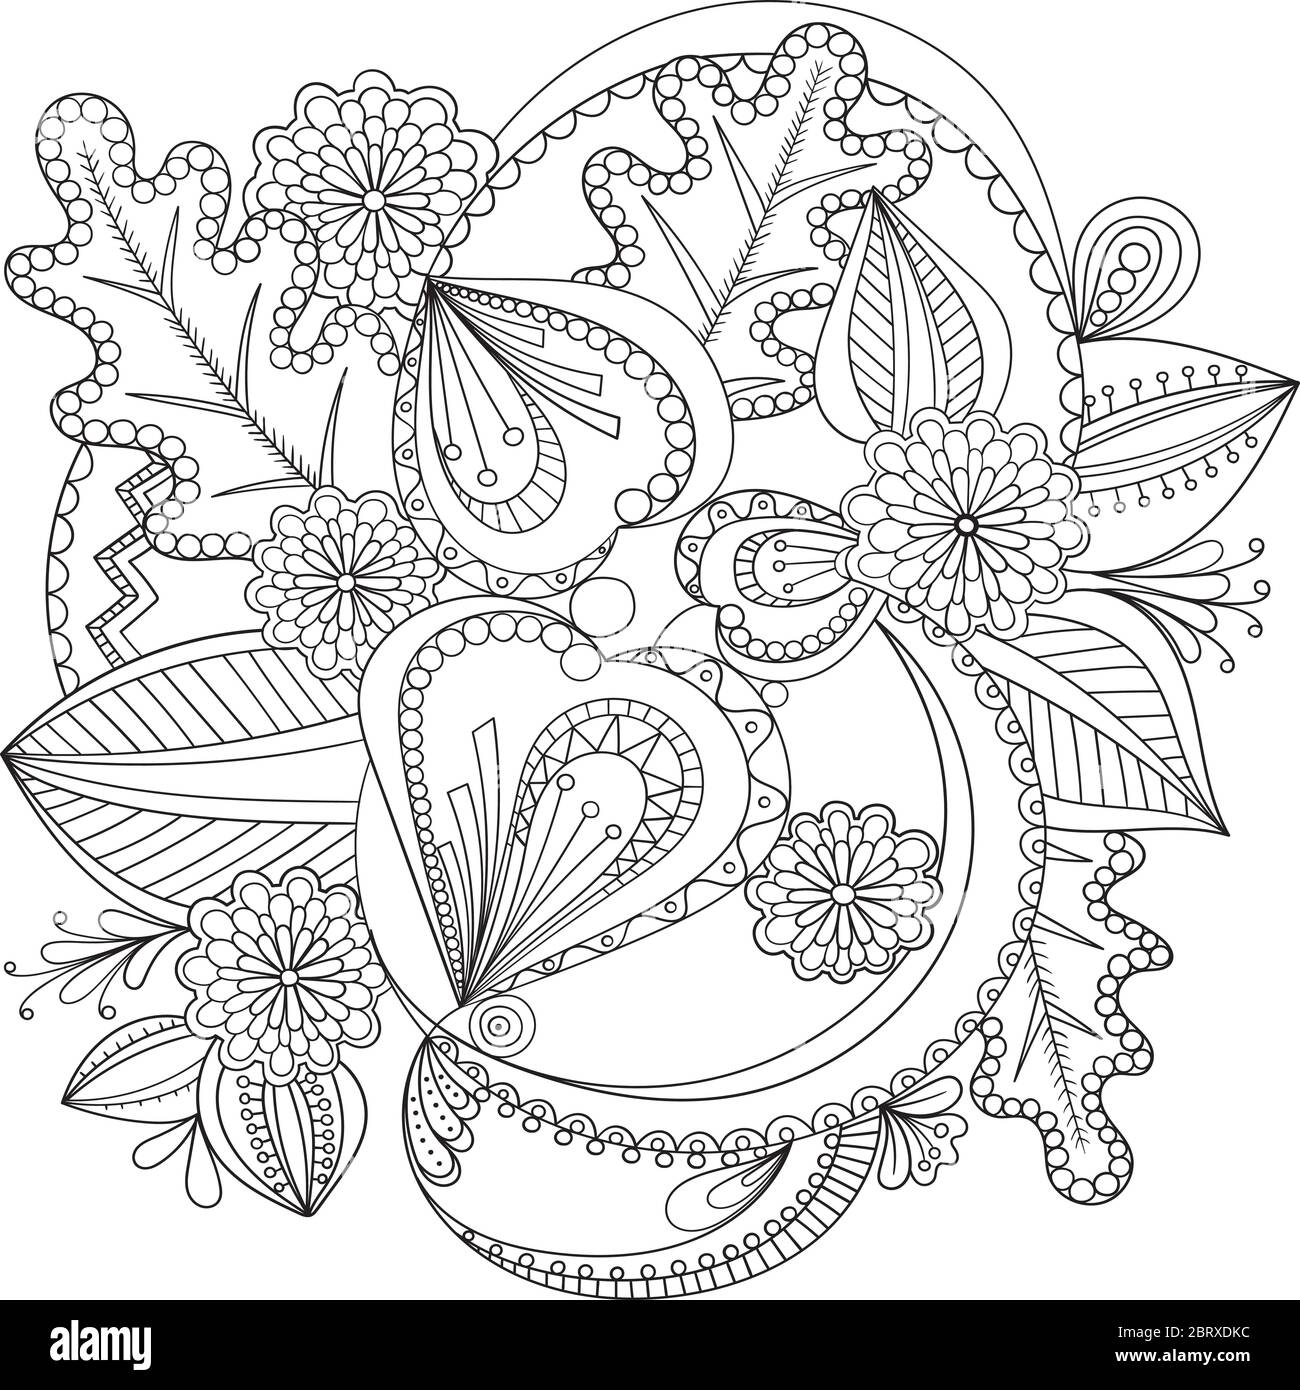 Botany Cover Page High Resolution Stock Photography And Images Alamy